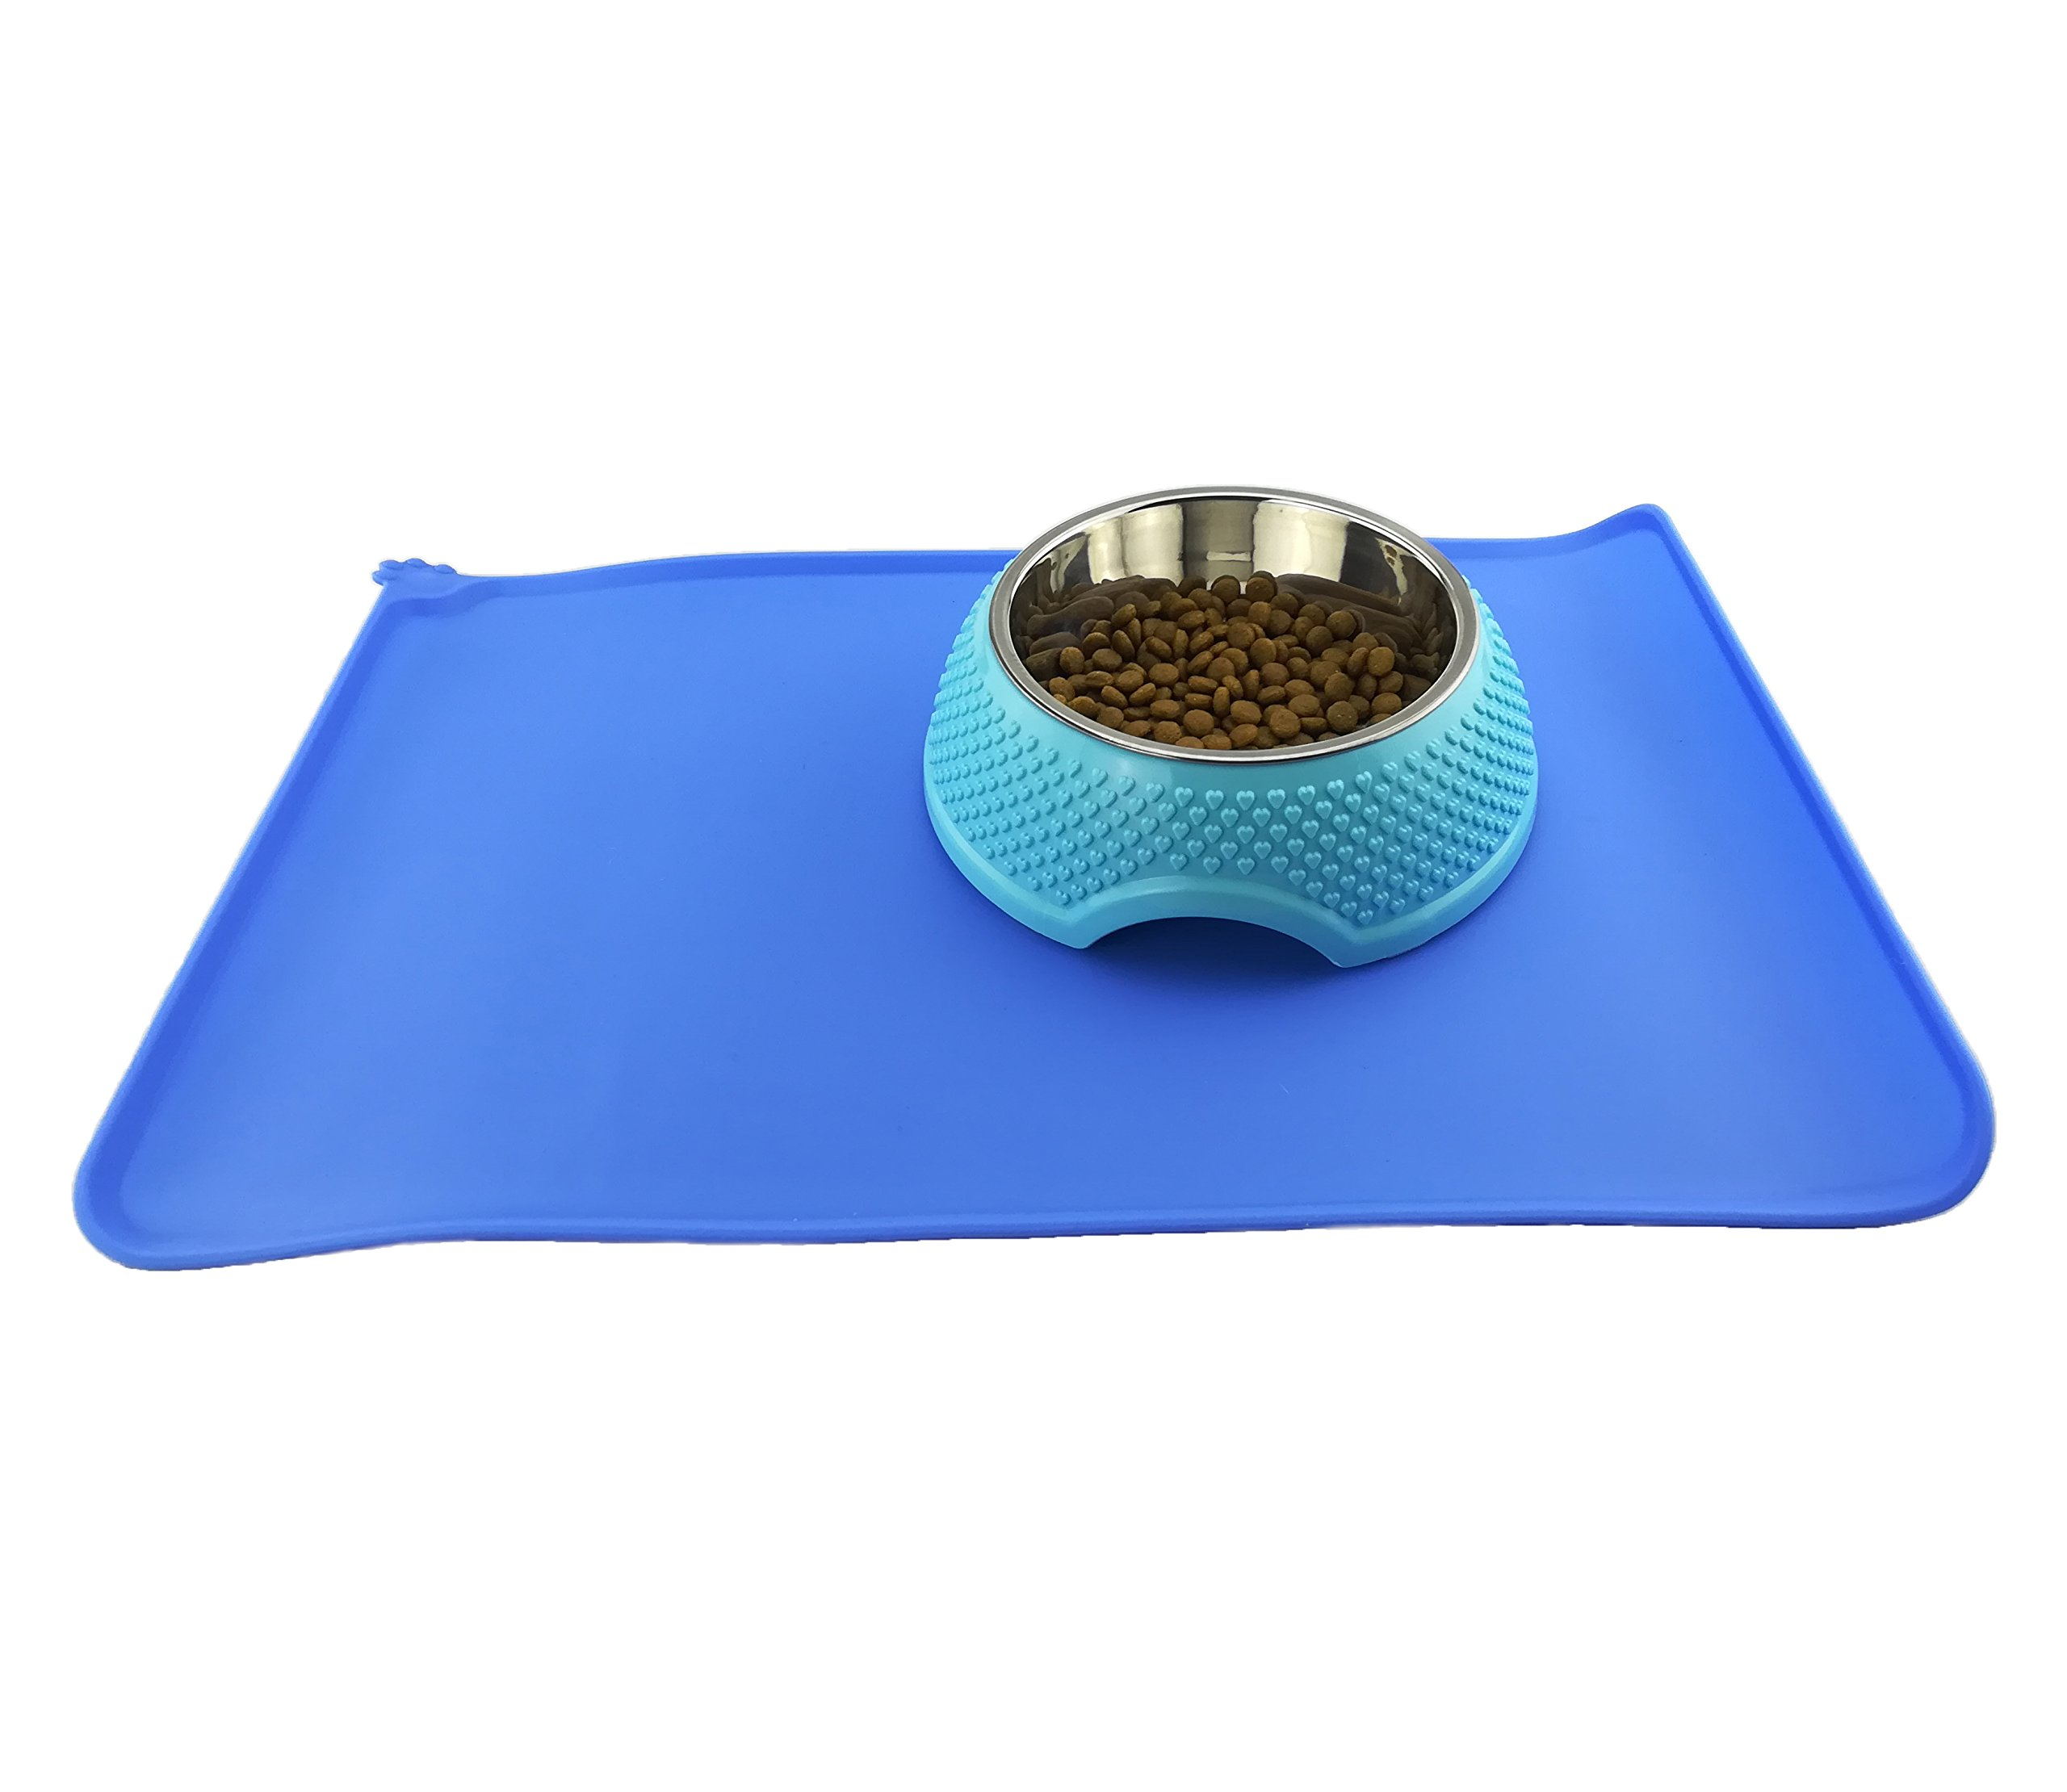 Newtensina Dog Bowl and Mat Waterproof Silicone Cat Food Bowls Puppy Mats for Bowls - Blue Bowl Mat & Blue Stainless Steel Bowl by Newtensina